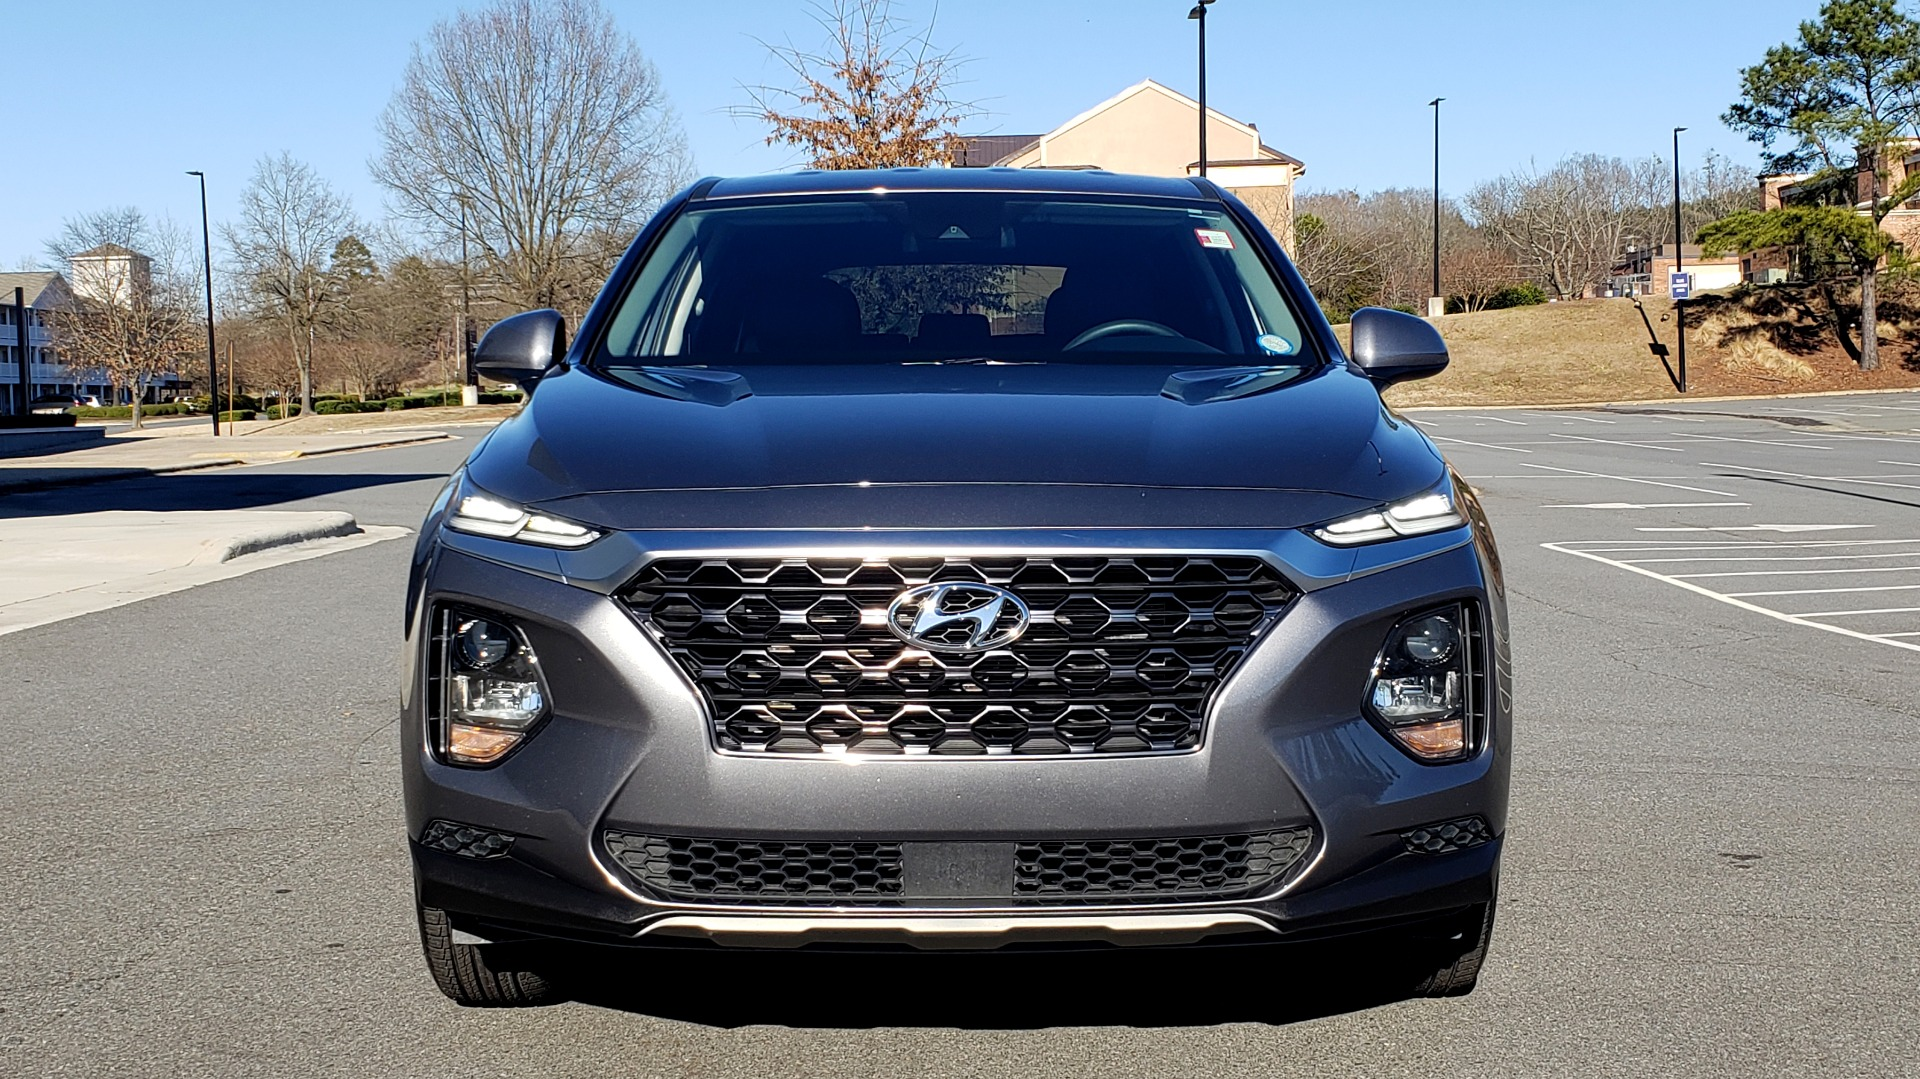 Used 2019 Hyundai SANTA FE SE / 2.4L 4-CYL / 8-SPD AUTO / BLIND SPOT / LANE KEEP ASSIST for sale Sold at Formula Imports in Charlotte NC 28227 24